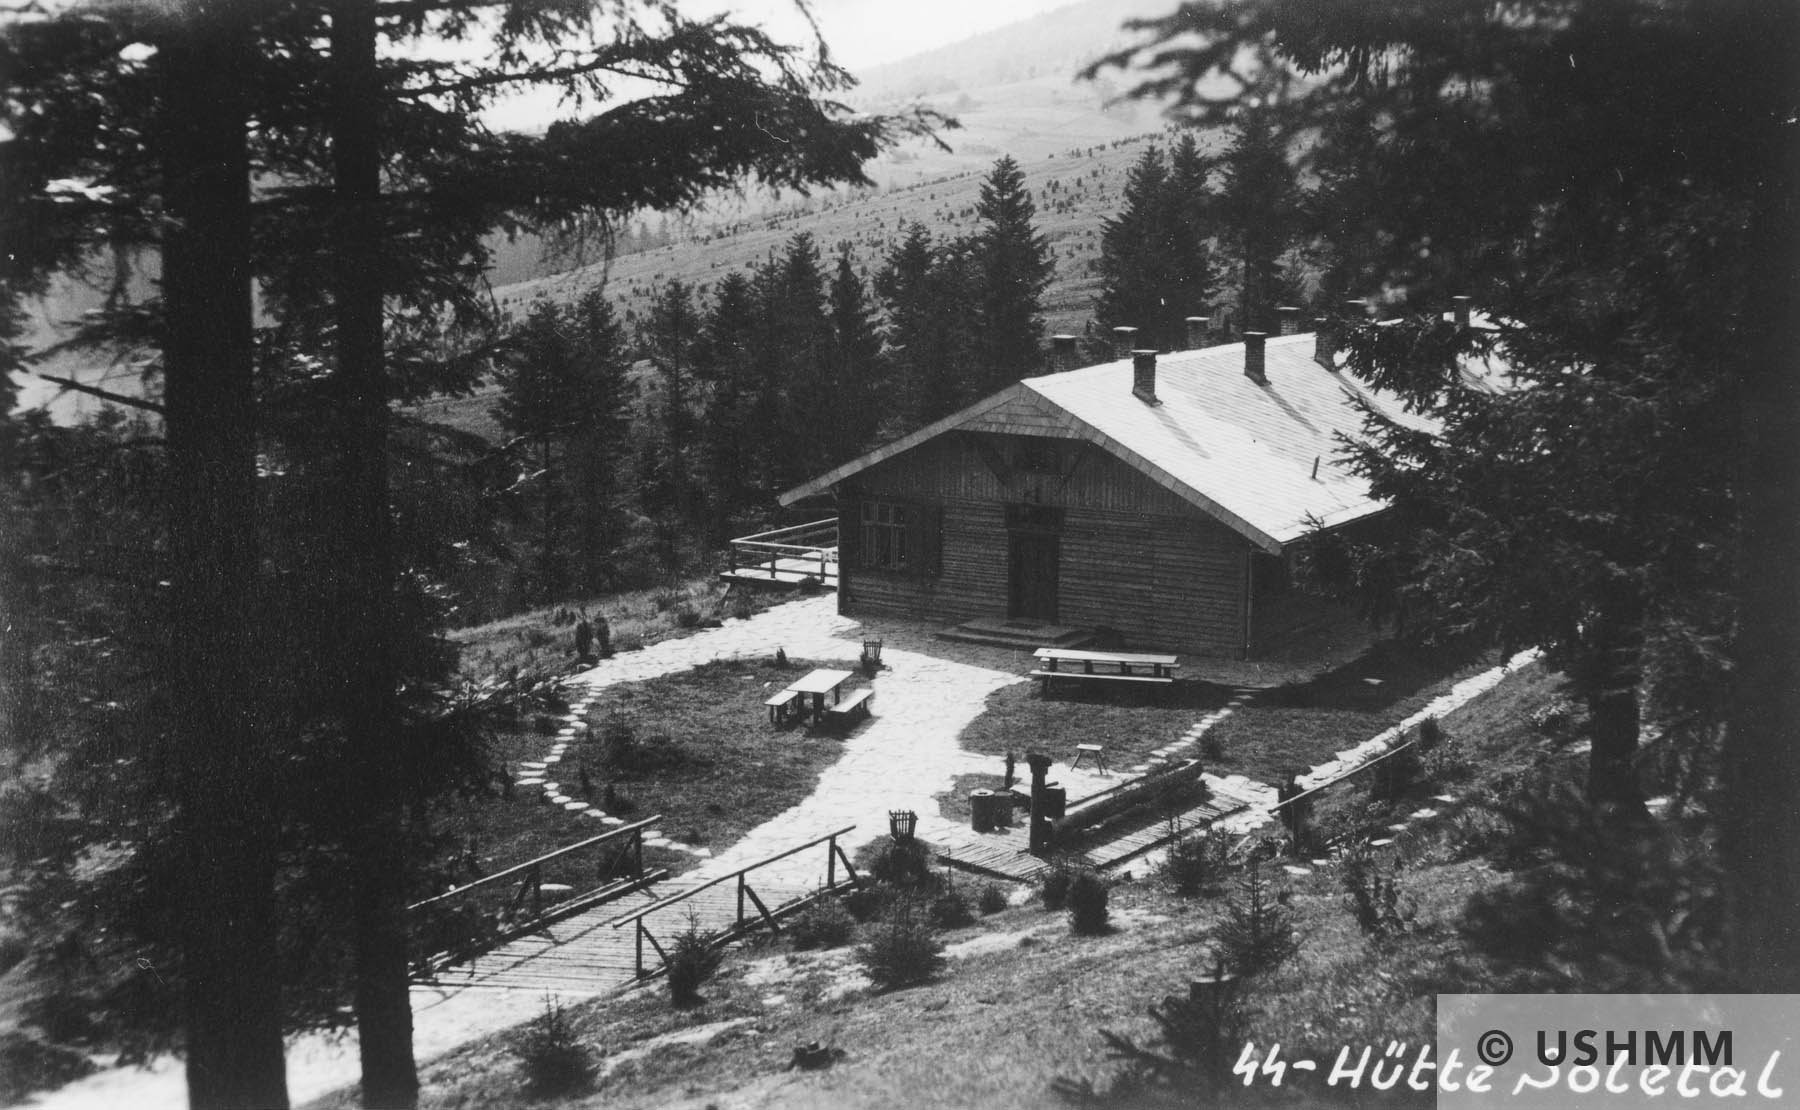 A view from above of a building and surrounding grounds of Solahütte. USHMM 34749